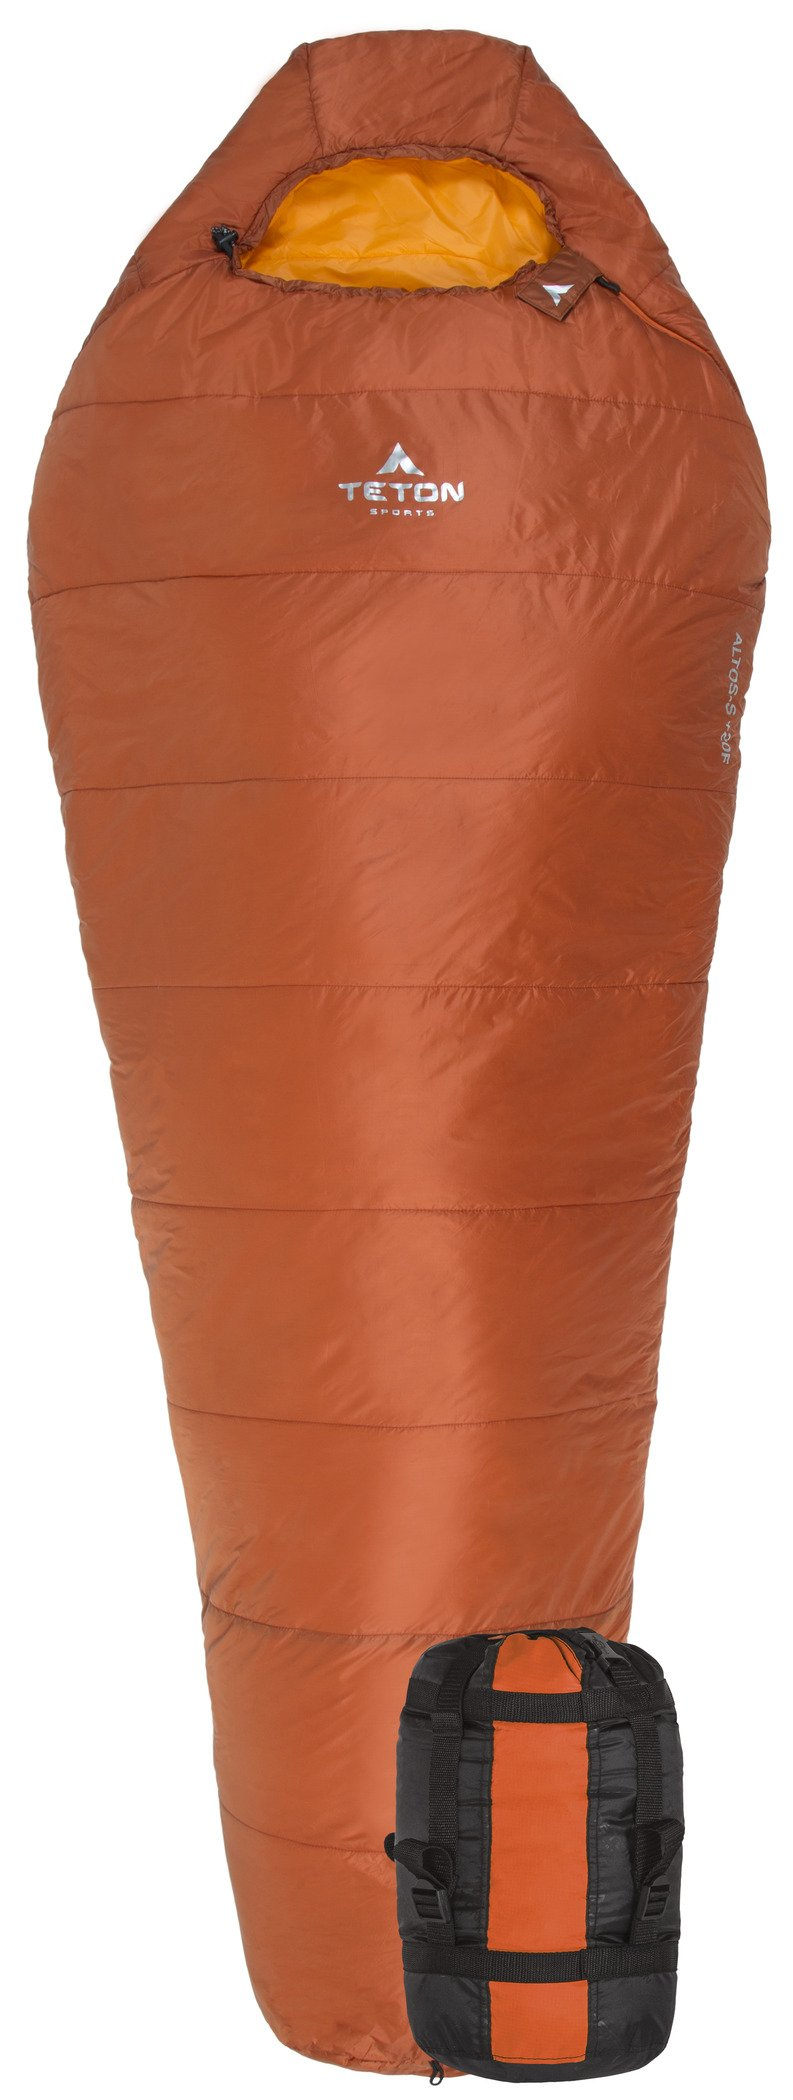 Teton Sports Altos Ultralight Mummy Sleeping Bag Perfect for Camping, Hiking, and Backpacking; Lightweight All-Season Mummy Bag; Compression Sack Included 3